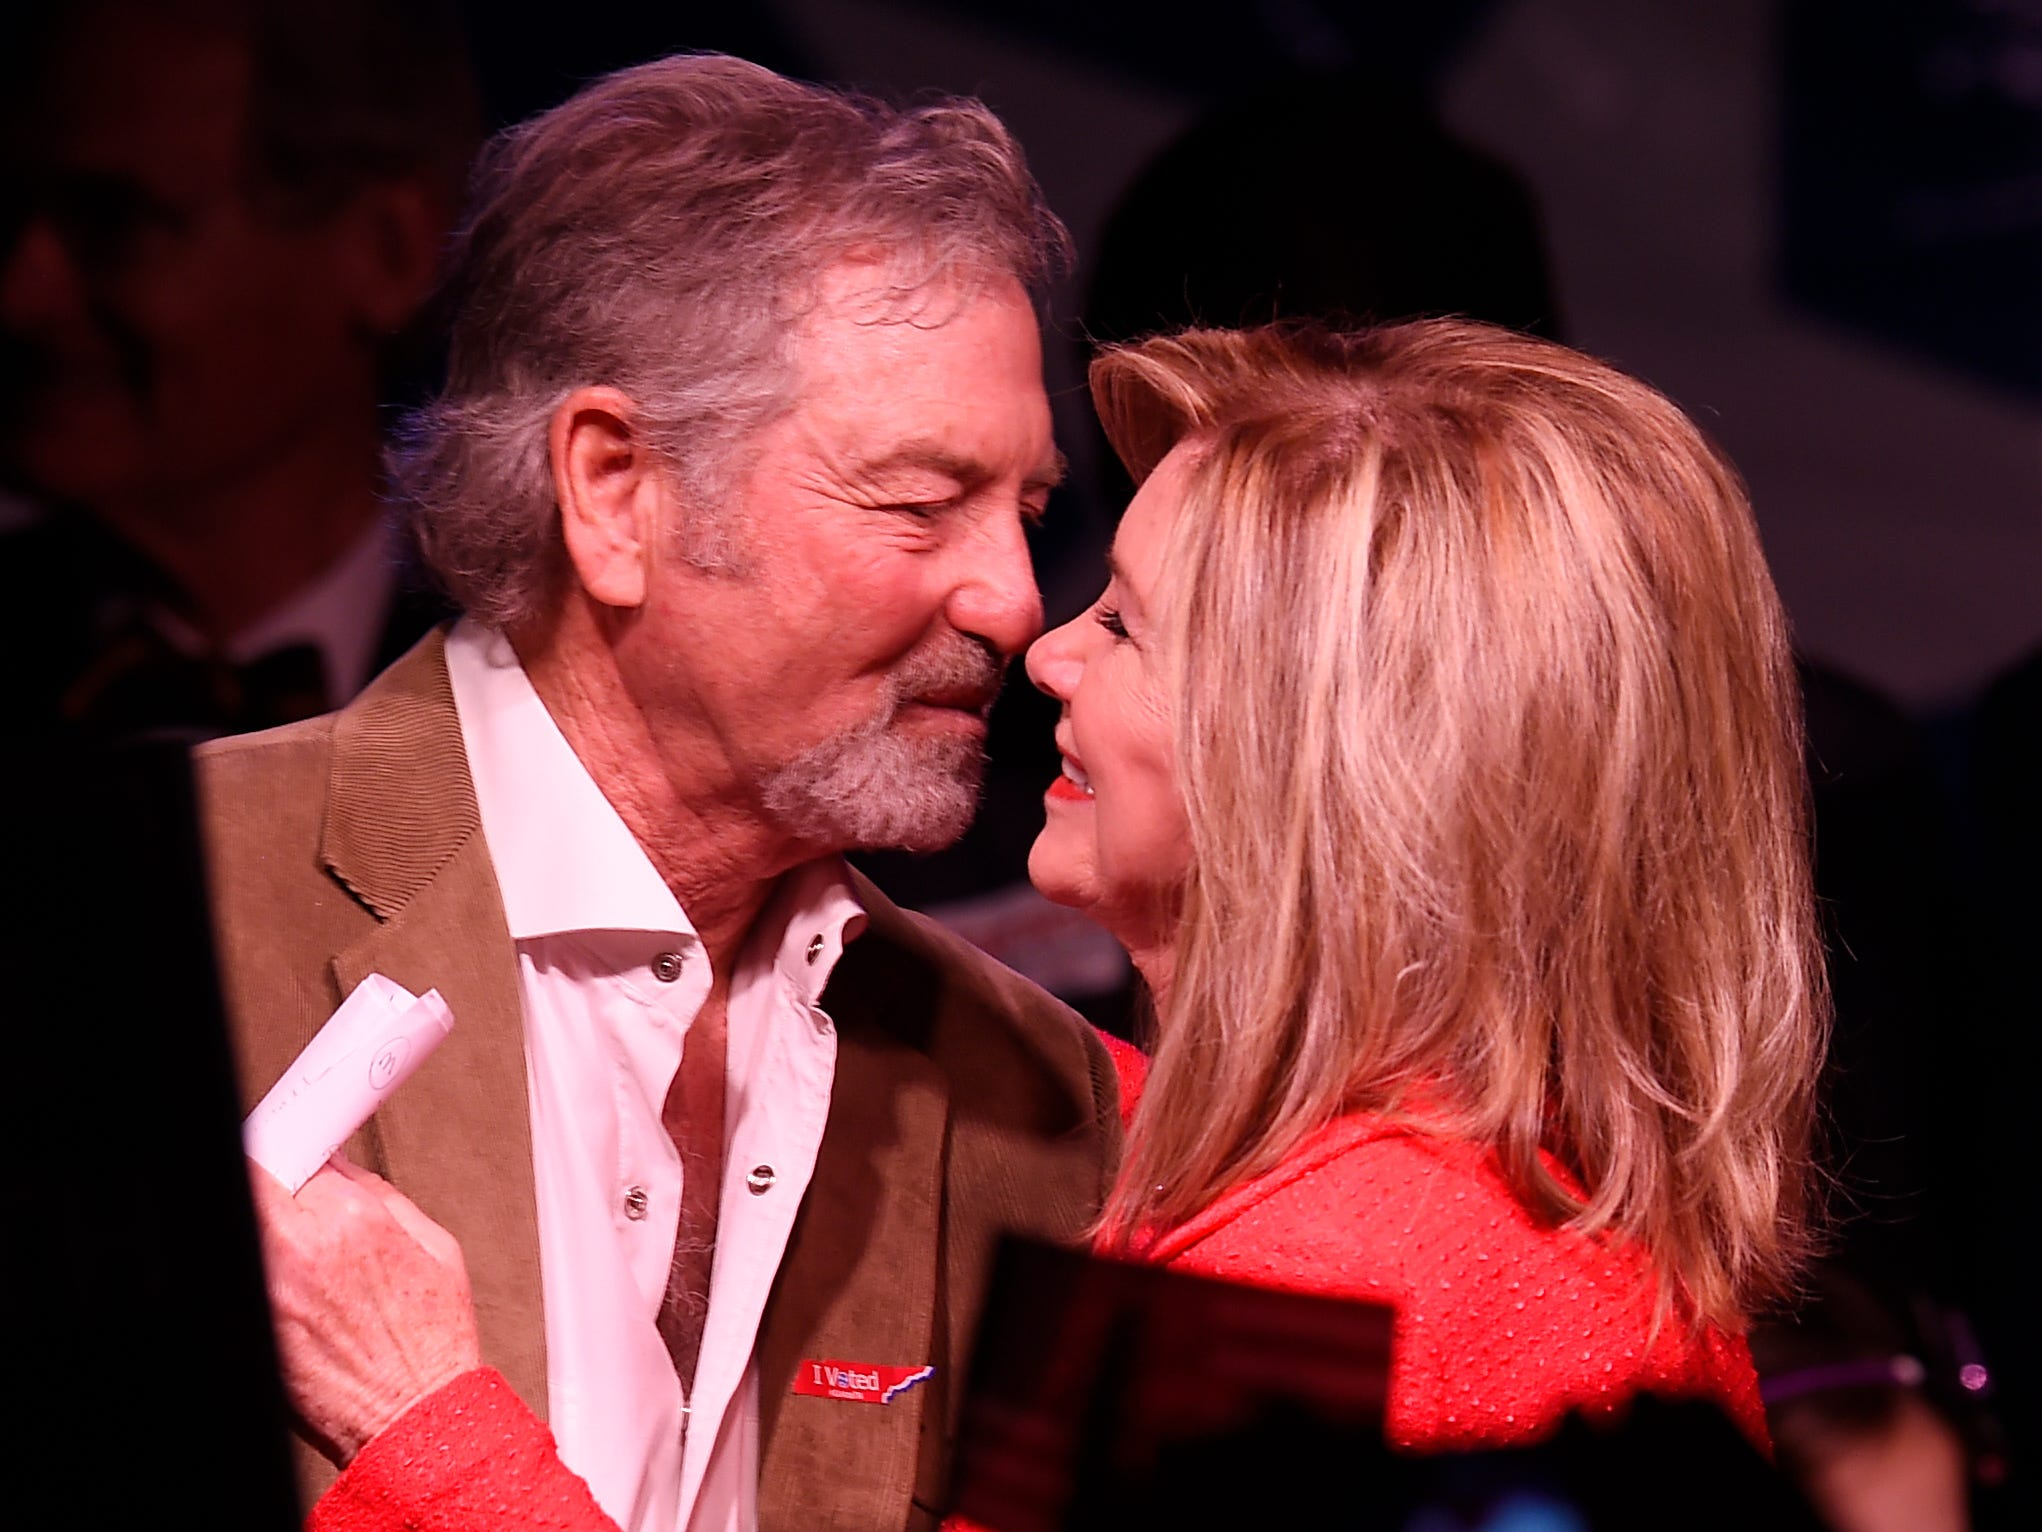 Senator-elect Marsha Blackburn embraces country artist Larry Gatlin after declaring victory at her election night watch party Tuesday, Nov. 6, 2018, in Franklin, Tenn.